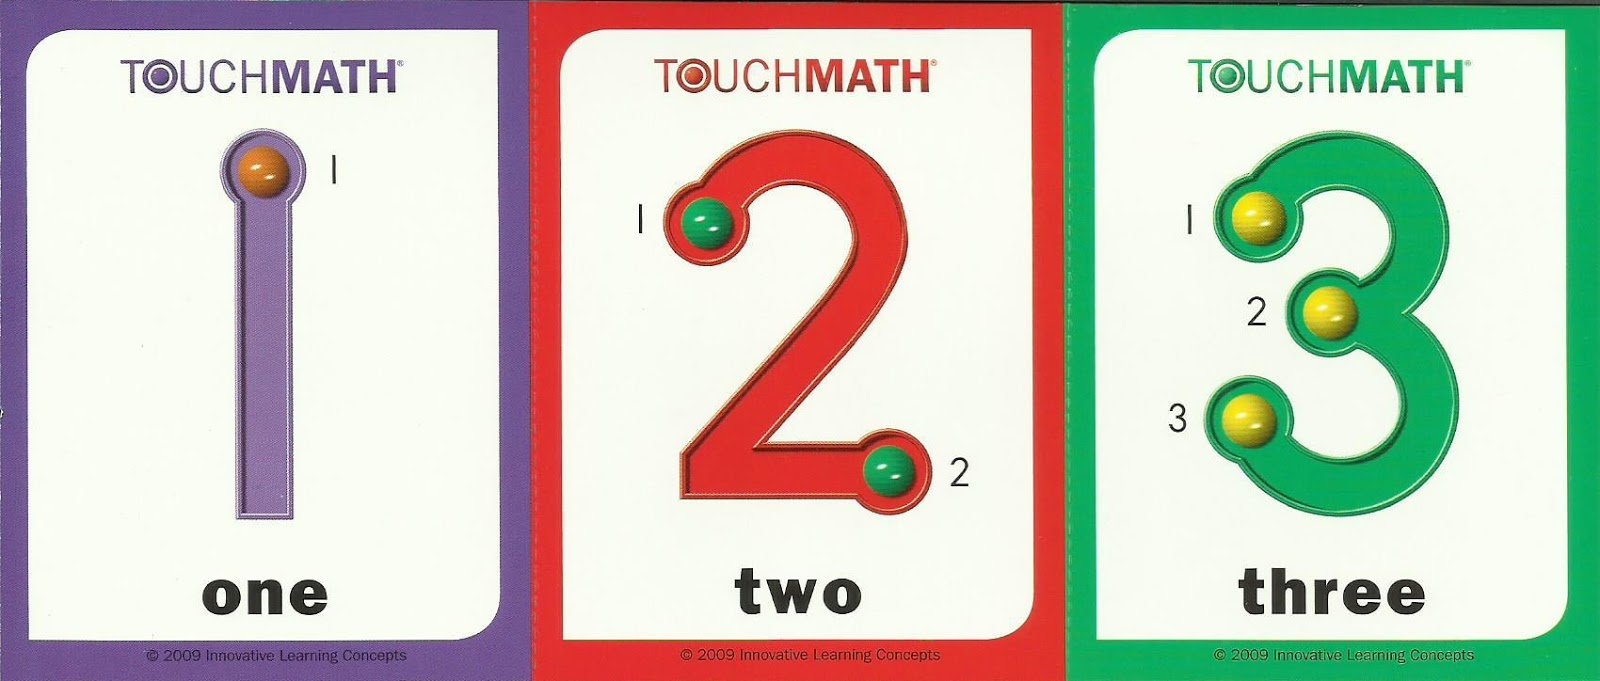 Every Bed of Roses A Touch Math Adventure TouchMath Review – Touch Math Worksheets Printable